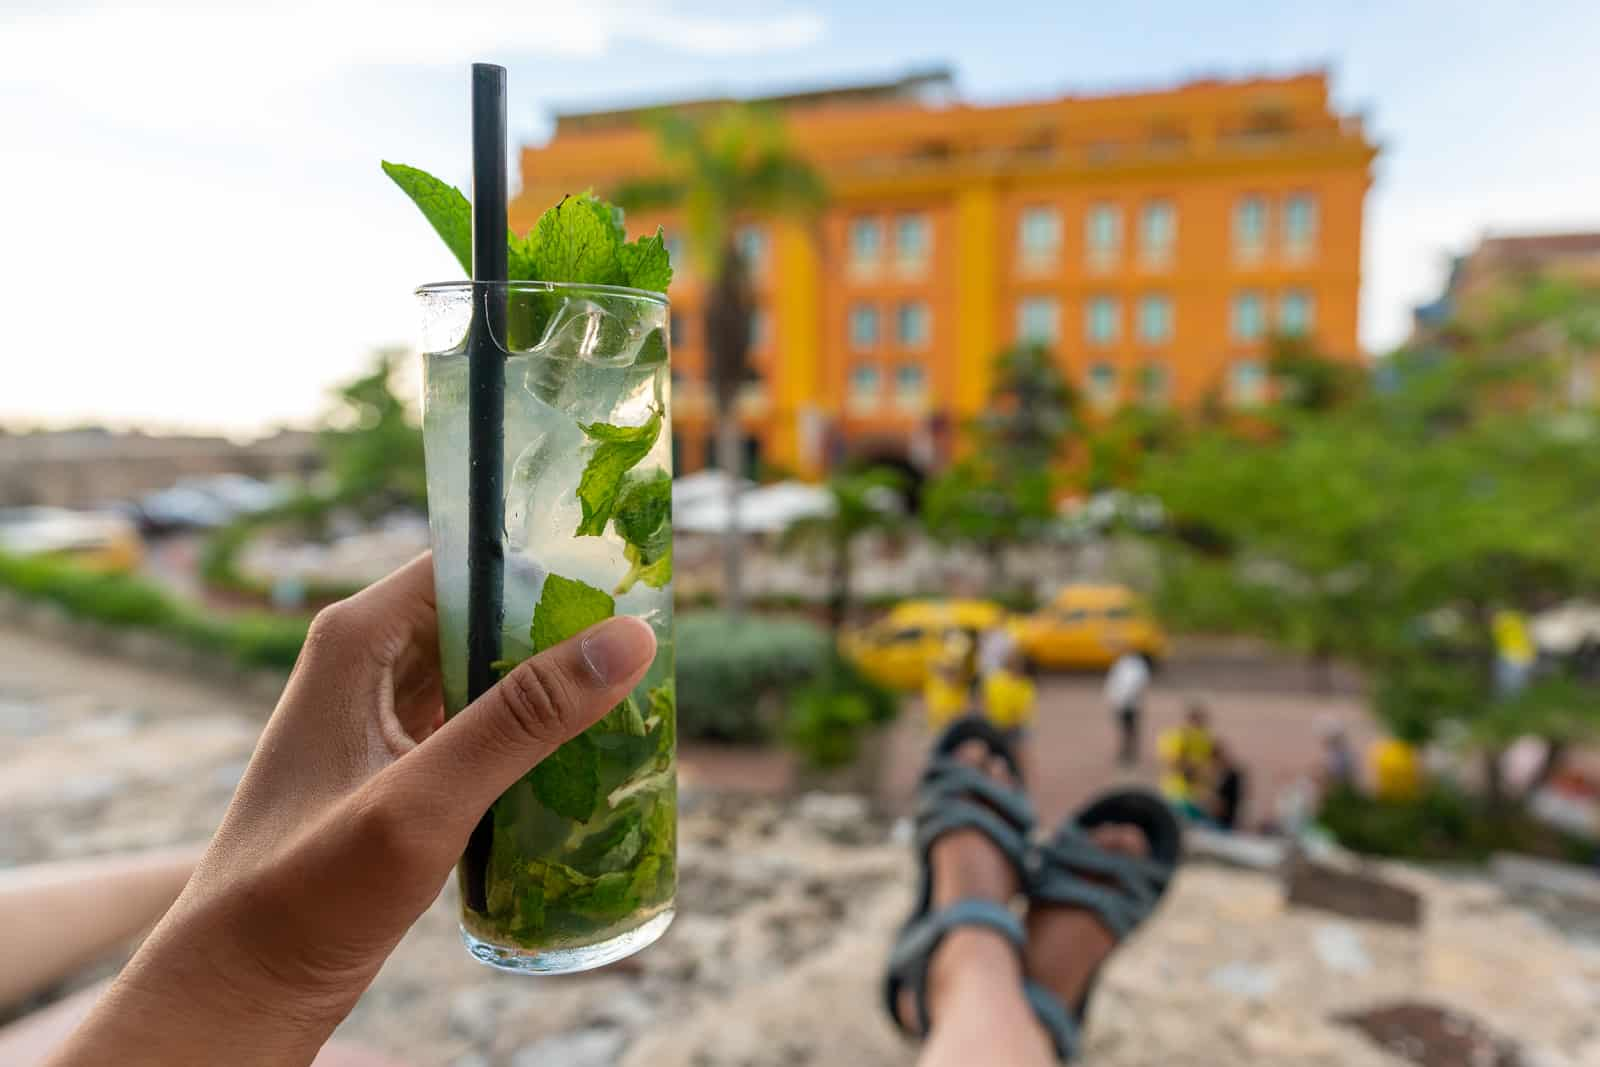 Cafes with wifi for digital nomads in Cartagena, Colombia - Happy hour drinks on a terrace at sunset - Lost With Purpose travel blog